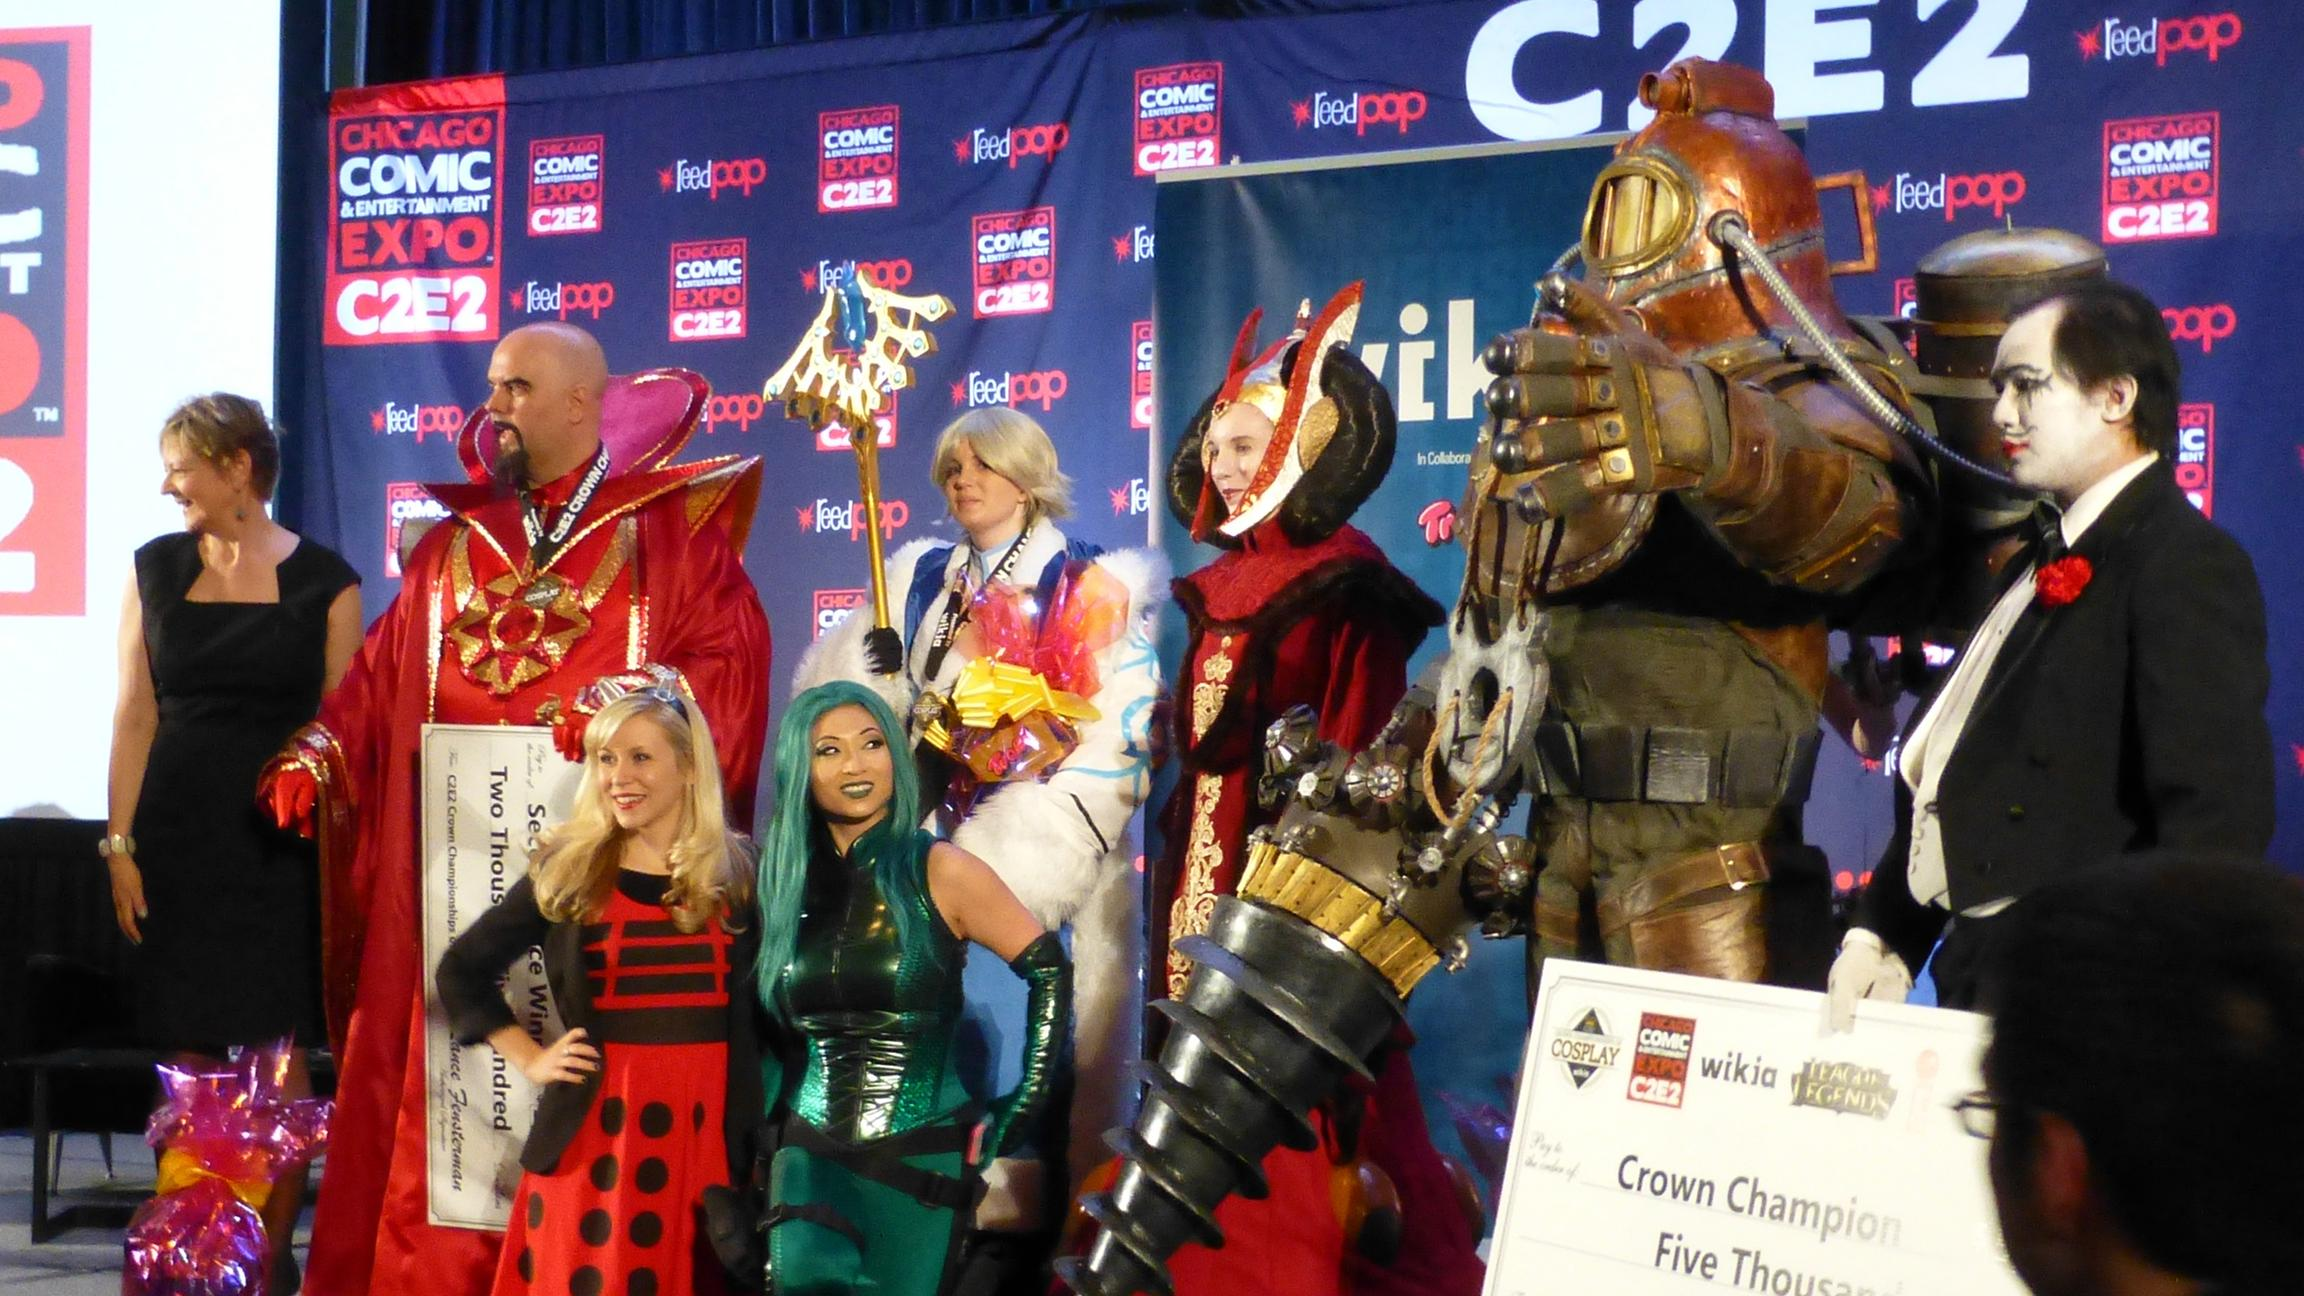 Winners and judges in the first annual Chicago Comic & Entertainment Expo (C2E2) Crown Championships of Cosplay in 2014. (GabboT / Flickr)